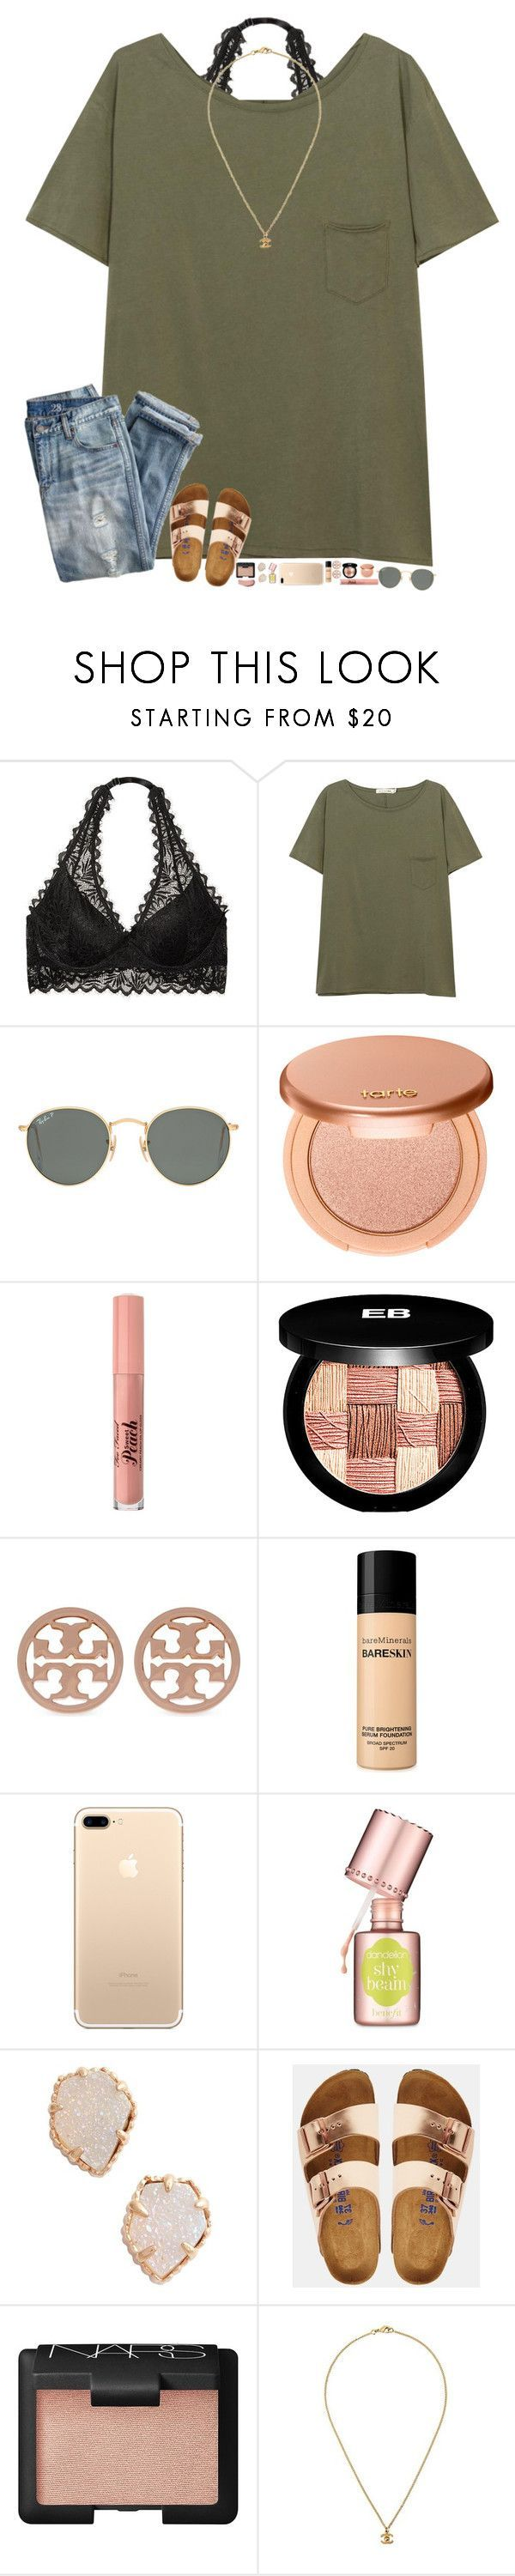 """""""happy st. paddys day!"""" by hopemarlee ❤ liked on Polyvore featuring Victoria's Secret, rag & bone/JEAN, Ray-Ban, J.Crew, tarte, Too Faced Cosmetics, Edward Bess, Tory Burch, Bare Escentuals and Benefit"""